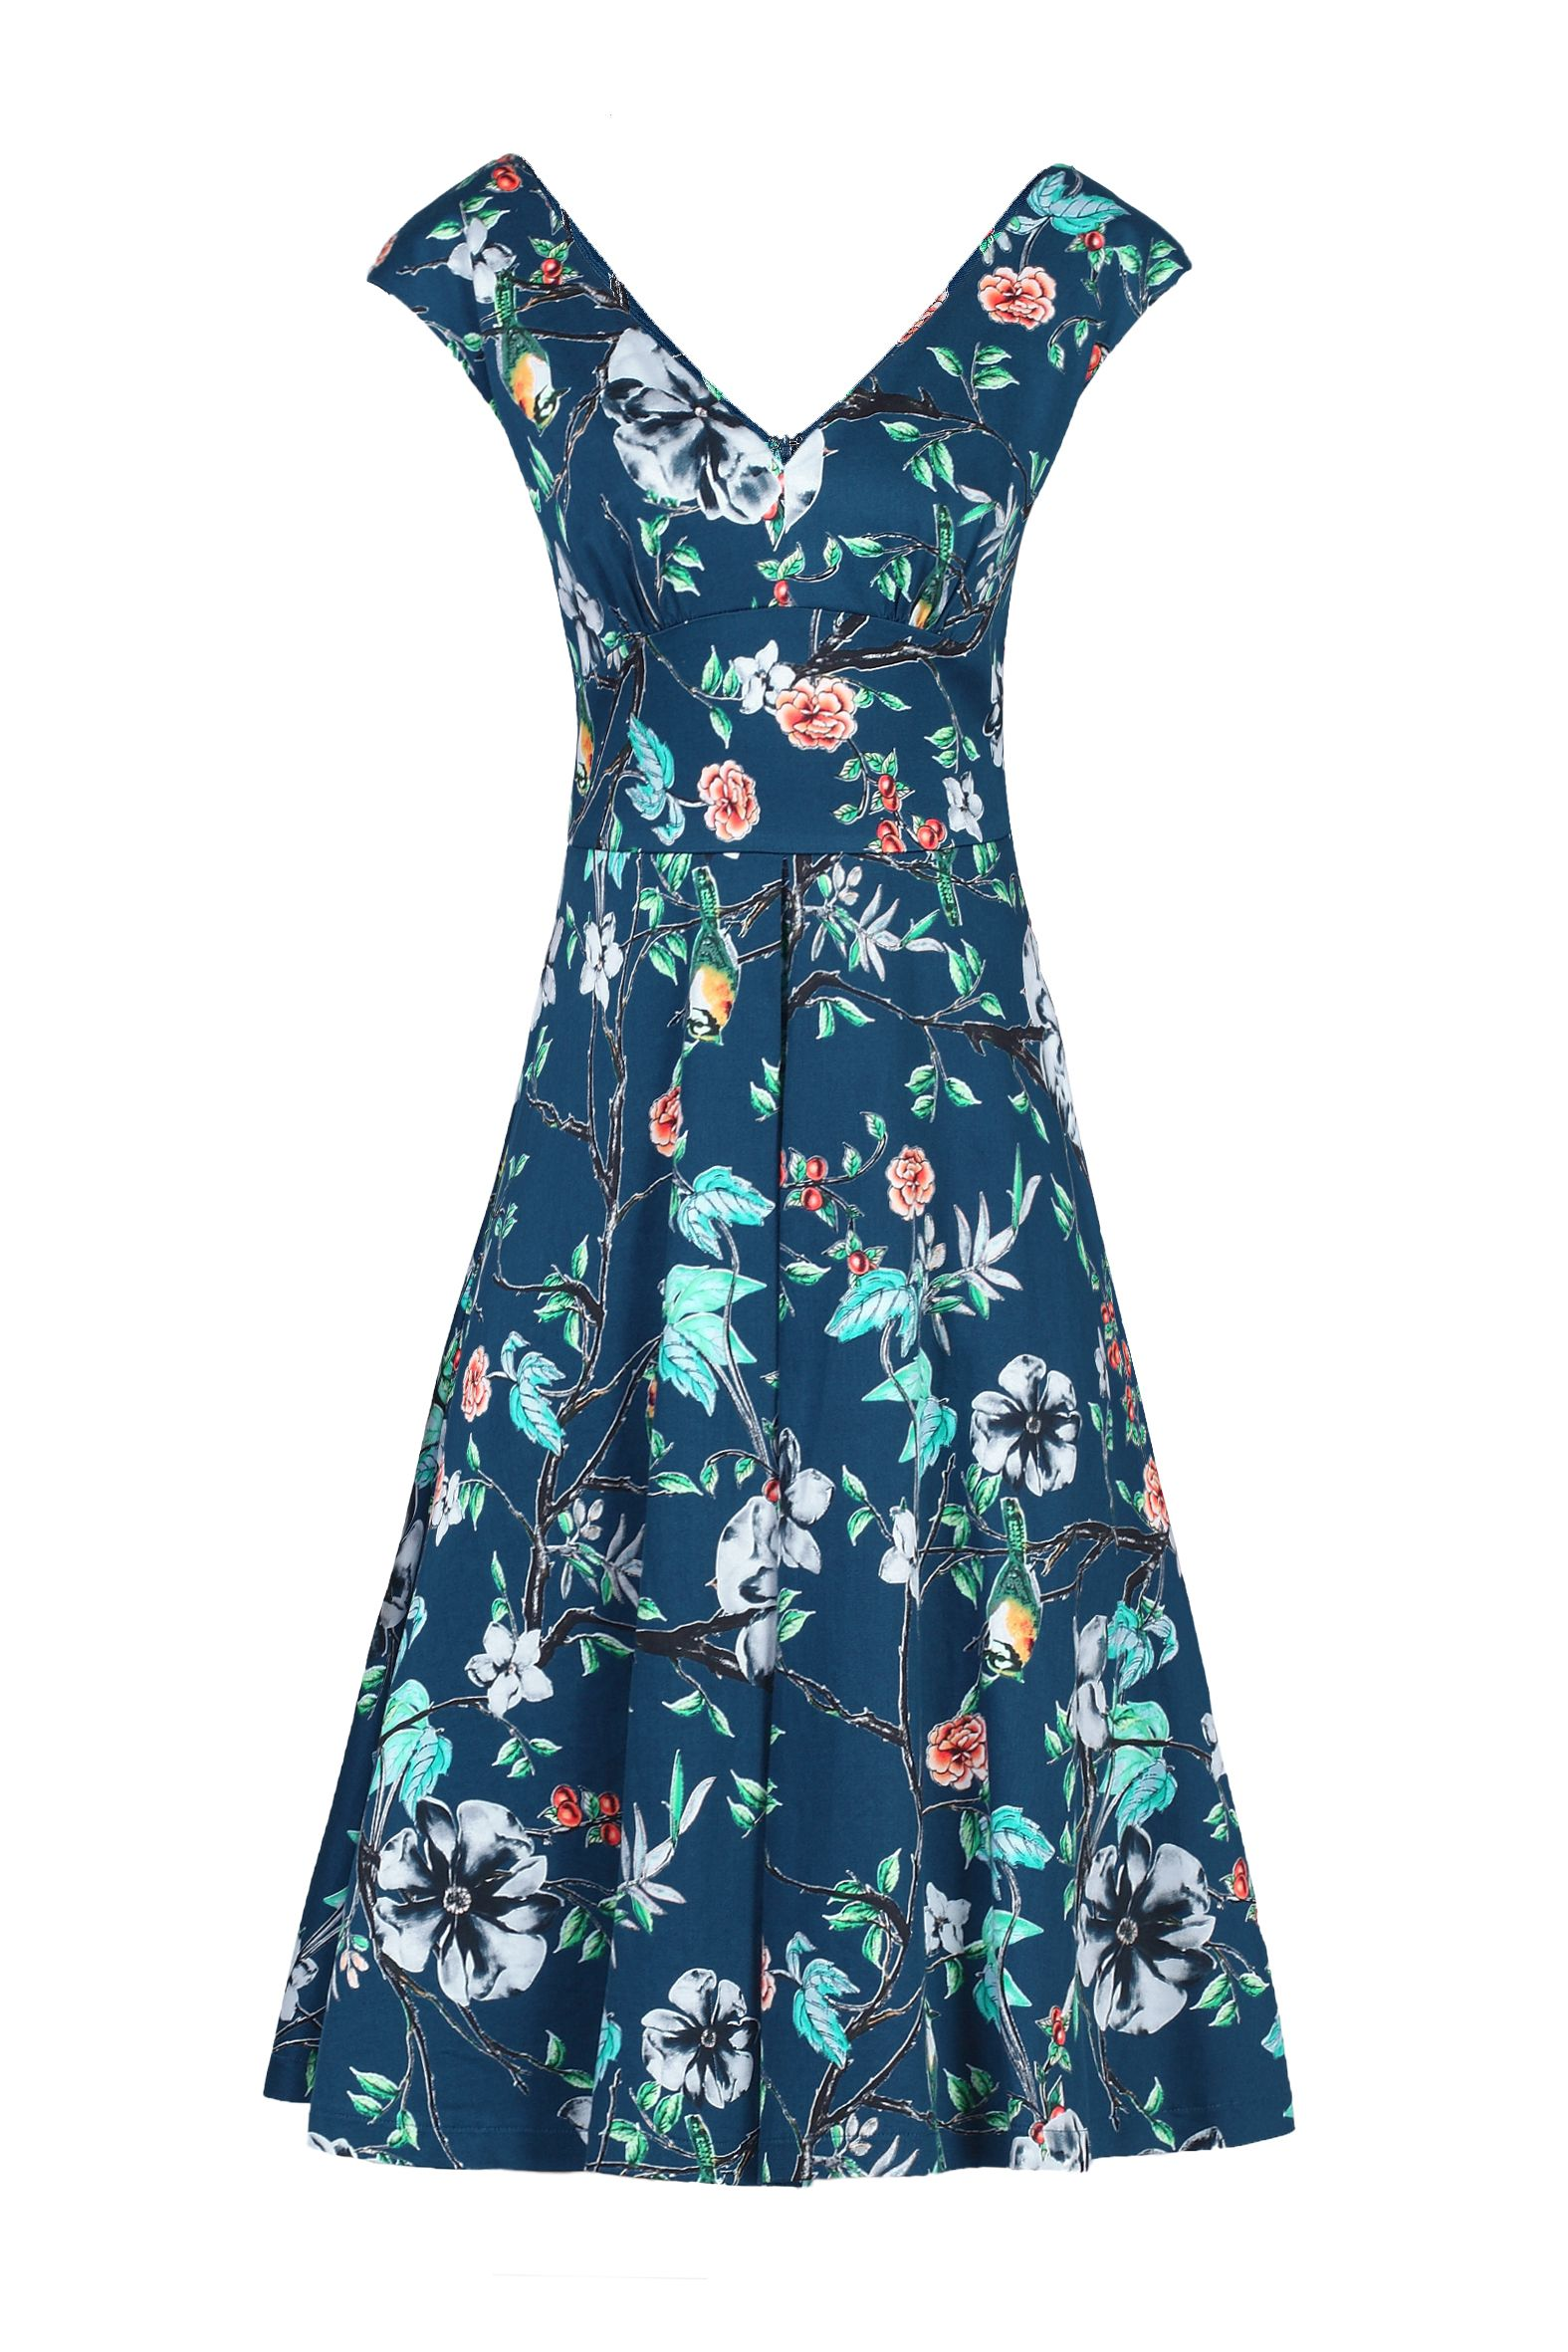 Jolie Moi Floral Print Sweetheart Neck Dress, Teal